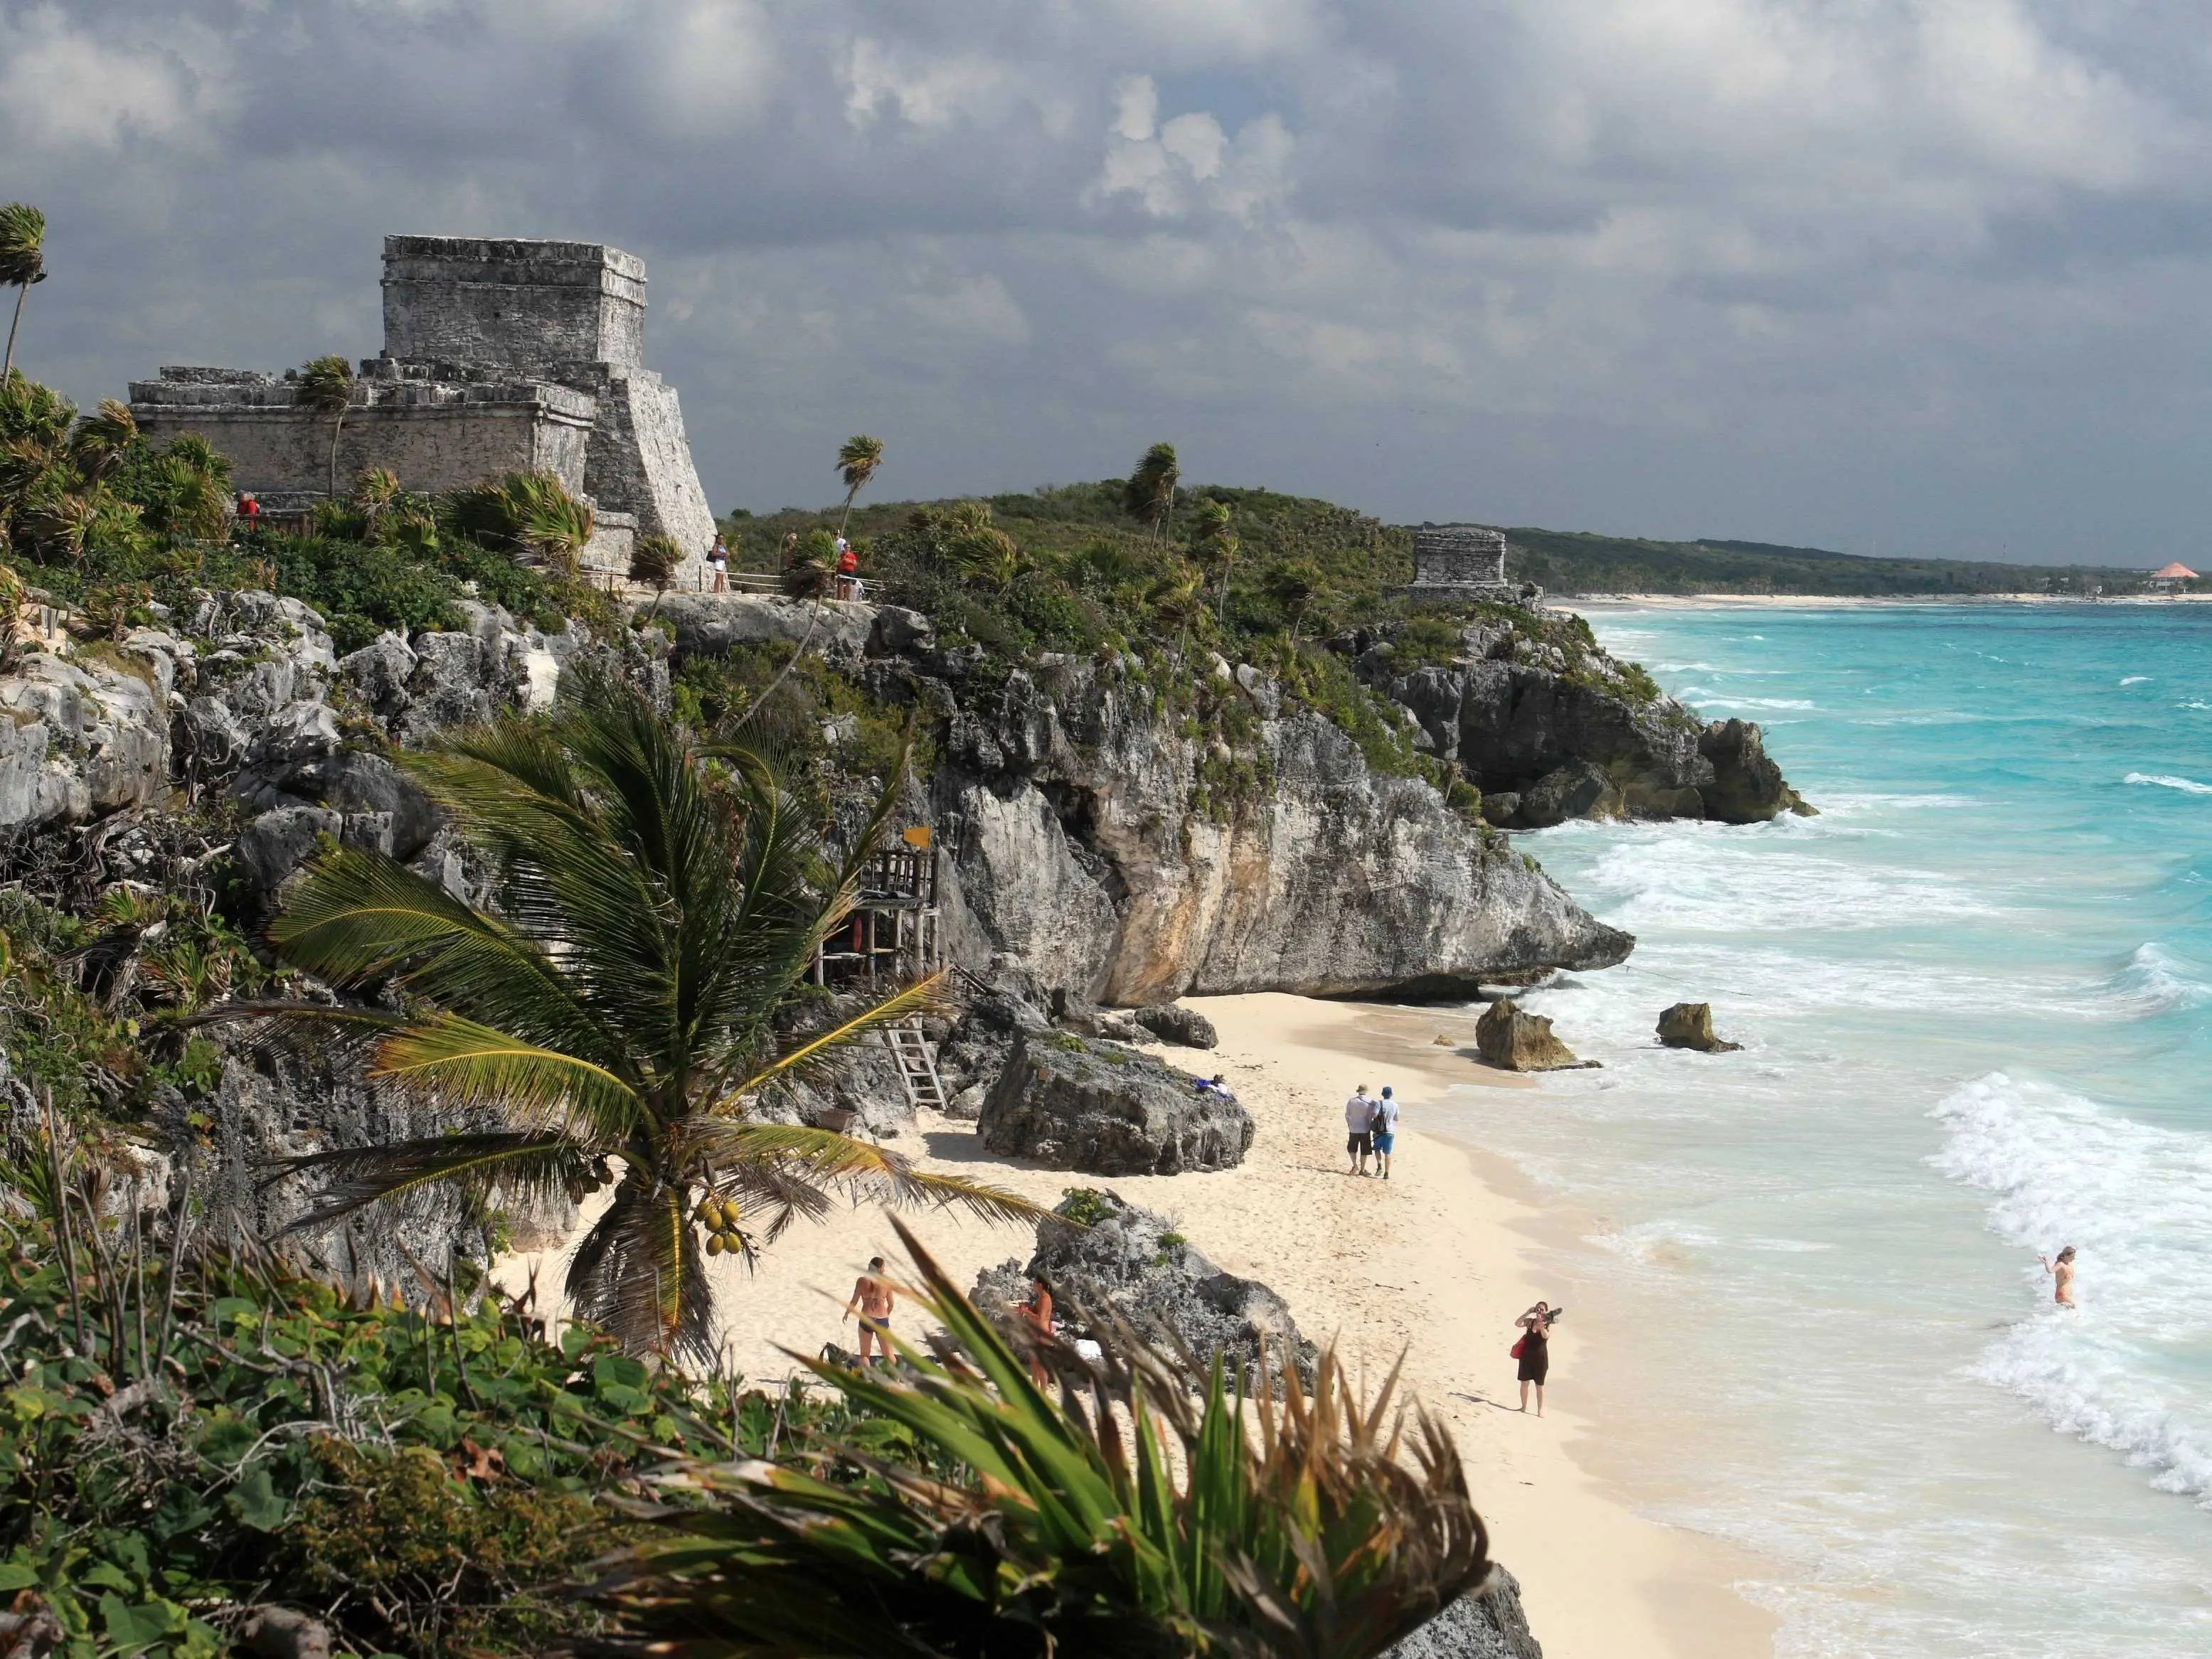 Mayan ships used to dock at Mexico's Tulum beach while on trade routes around the Yucatán peninsula. Now, beachgoers can swim and relax beneath the ancient Mayan ruins that overlook the Caribbean Sea.